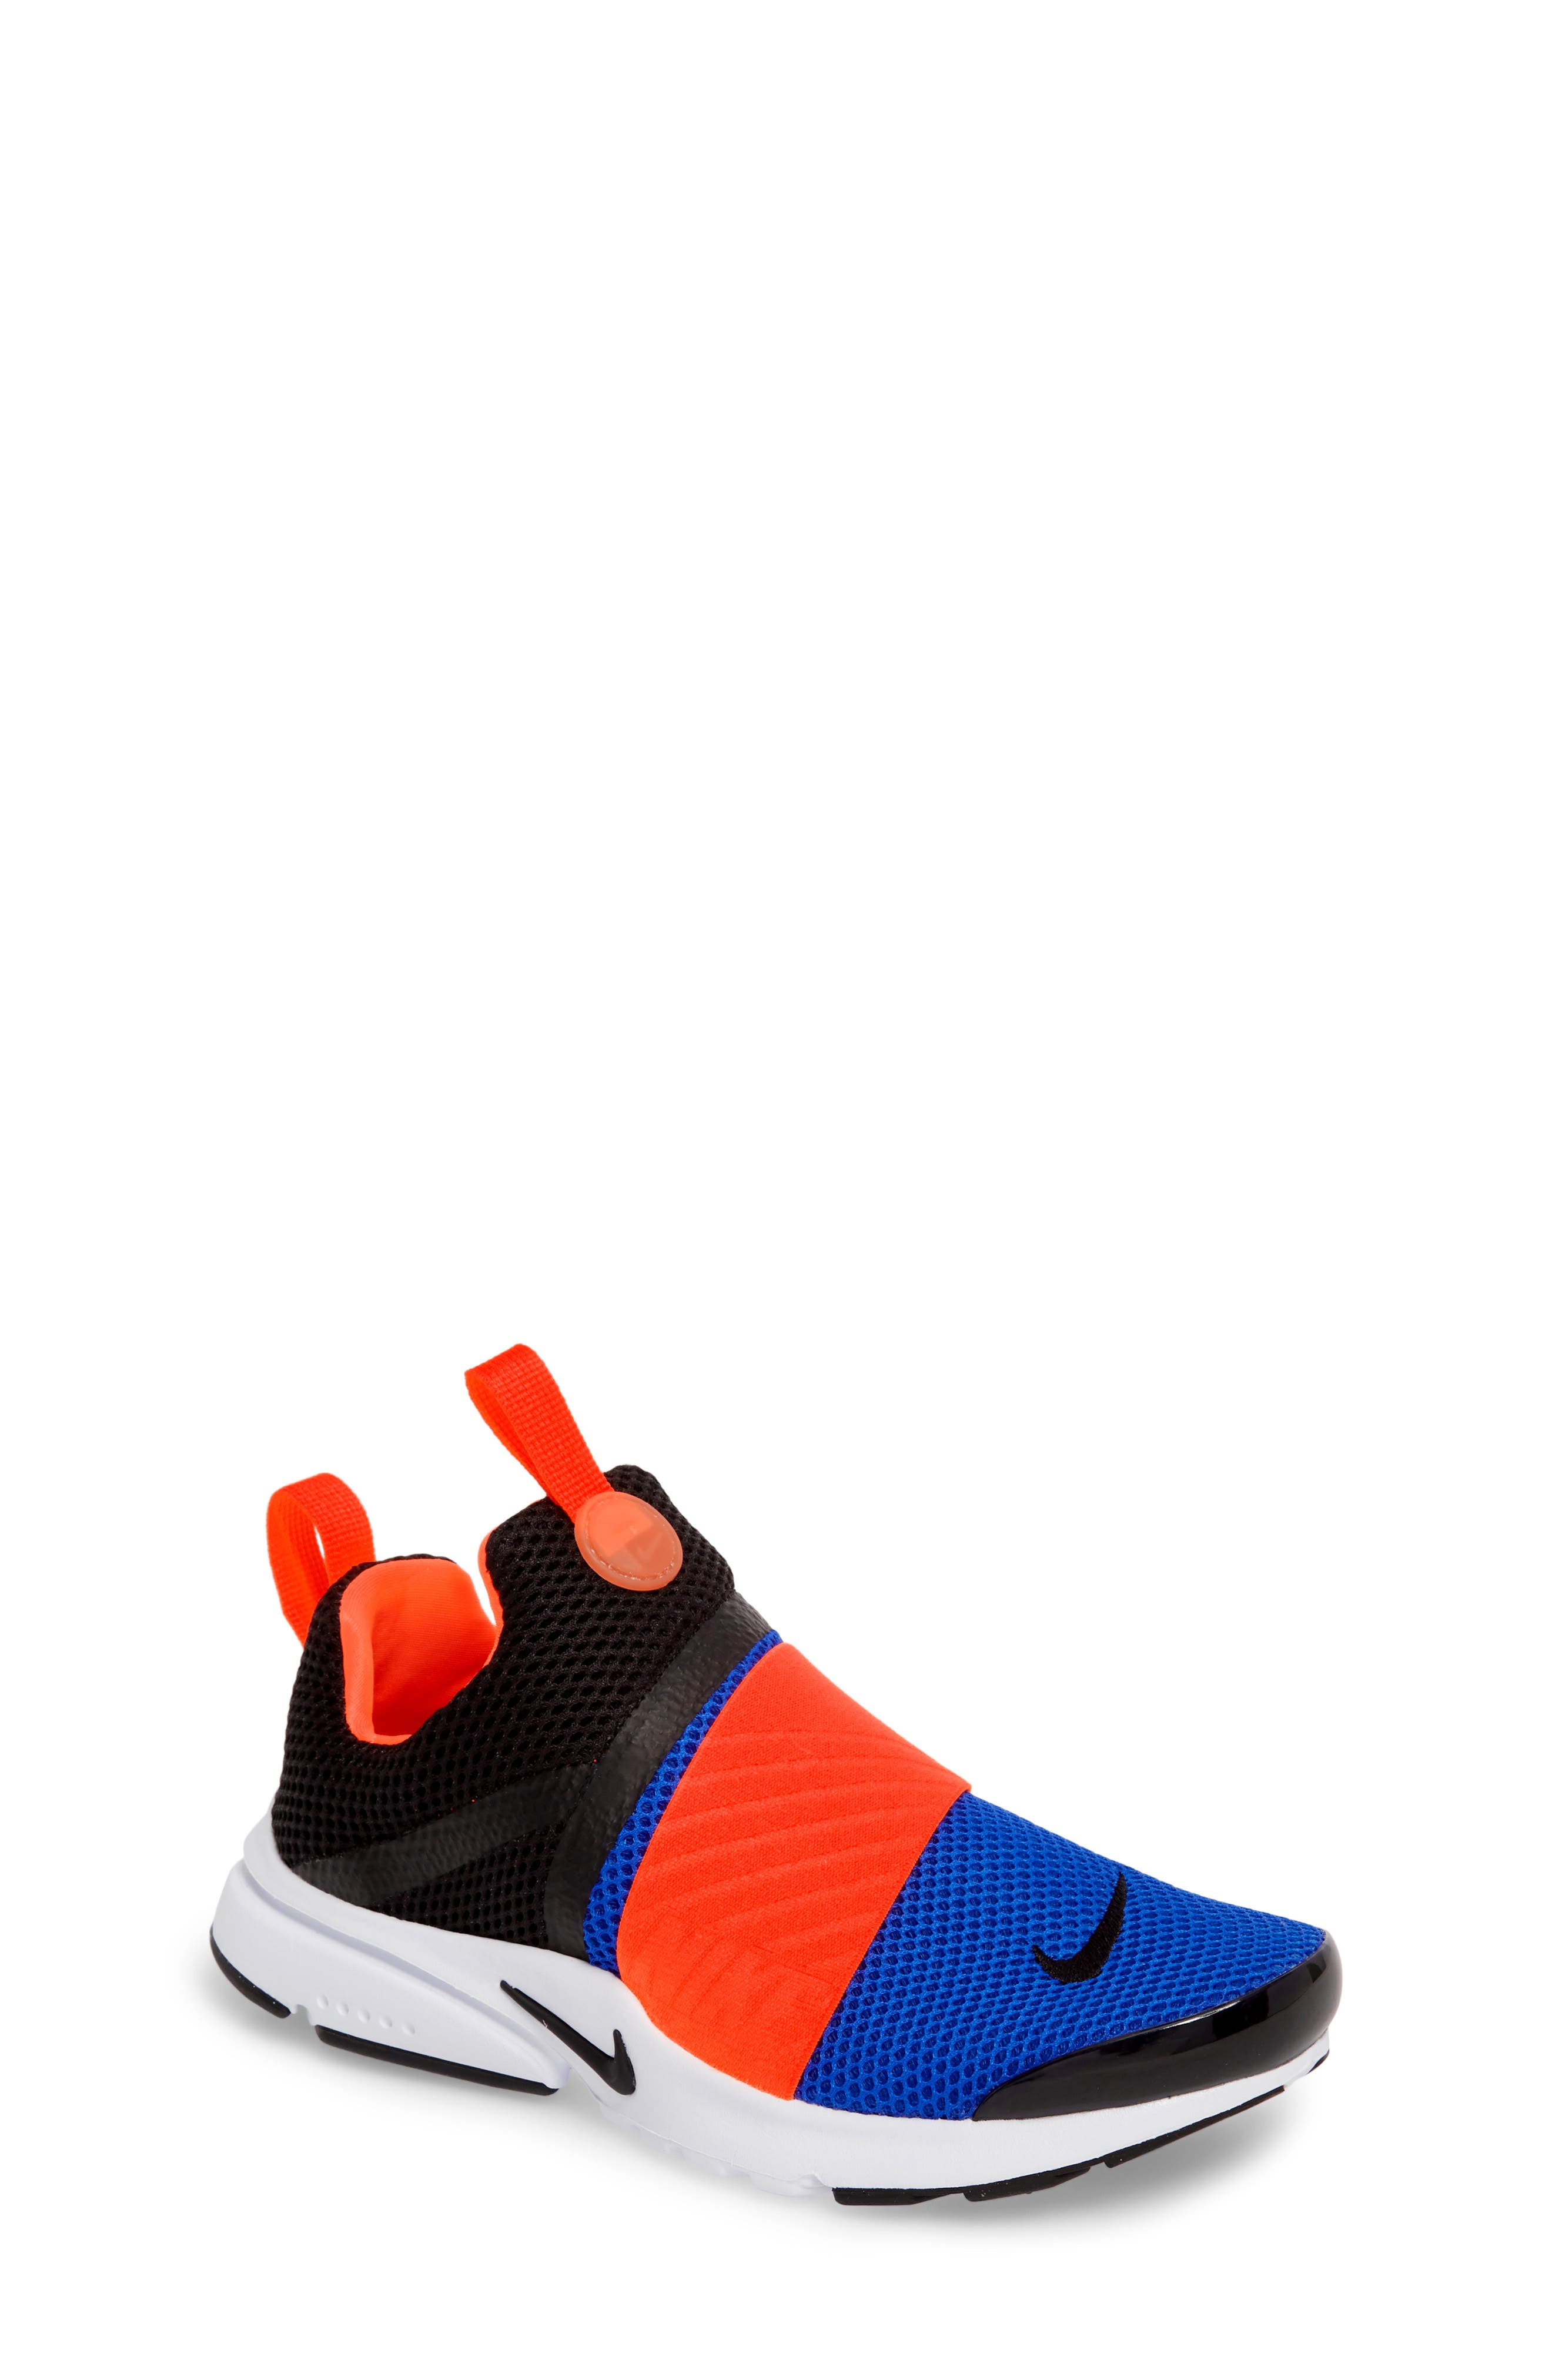 Presto Extreme Sneaker,                         Main,                         color, 004